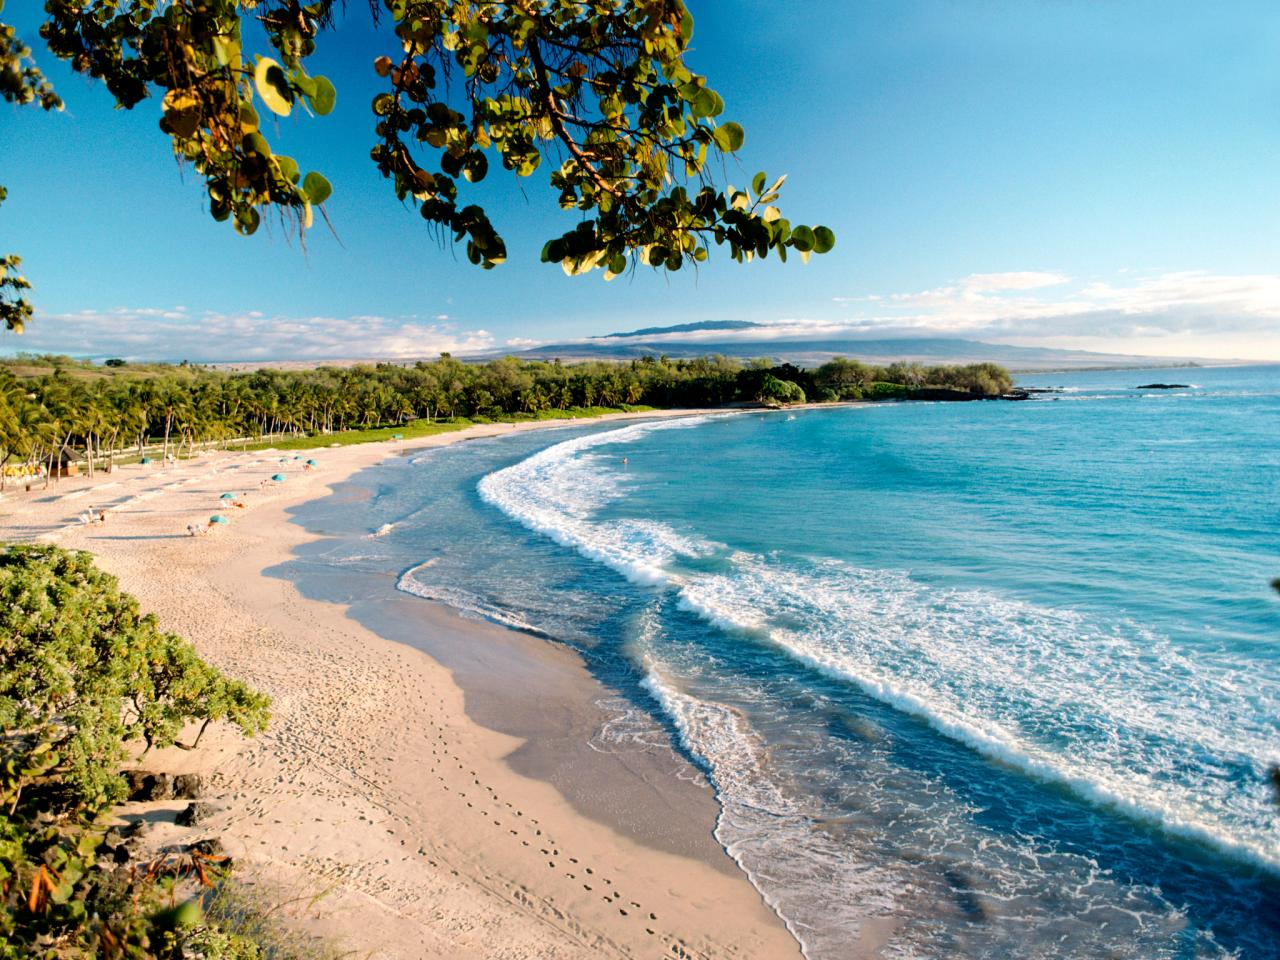 top-hawaiian-beaches-kaunaoa.jpg.rend.tccom.1280.960